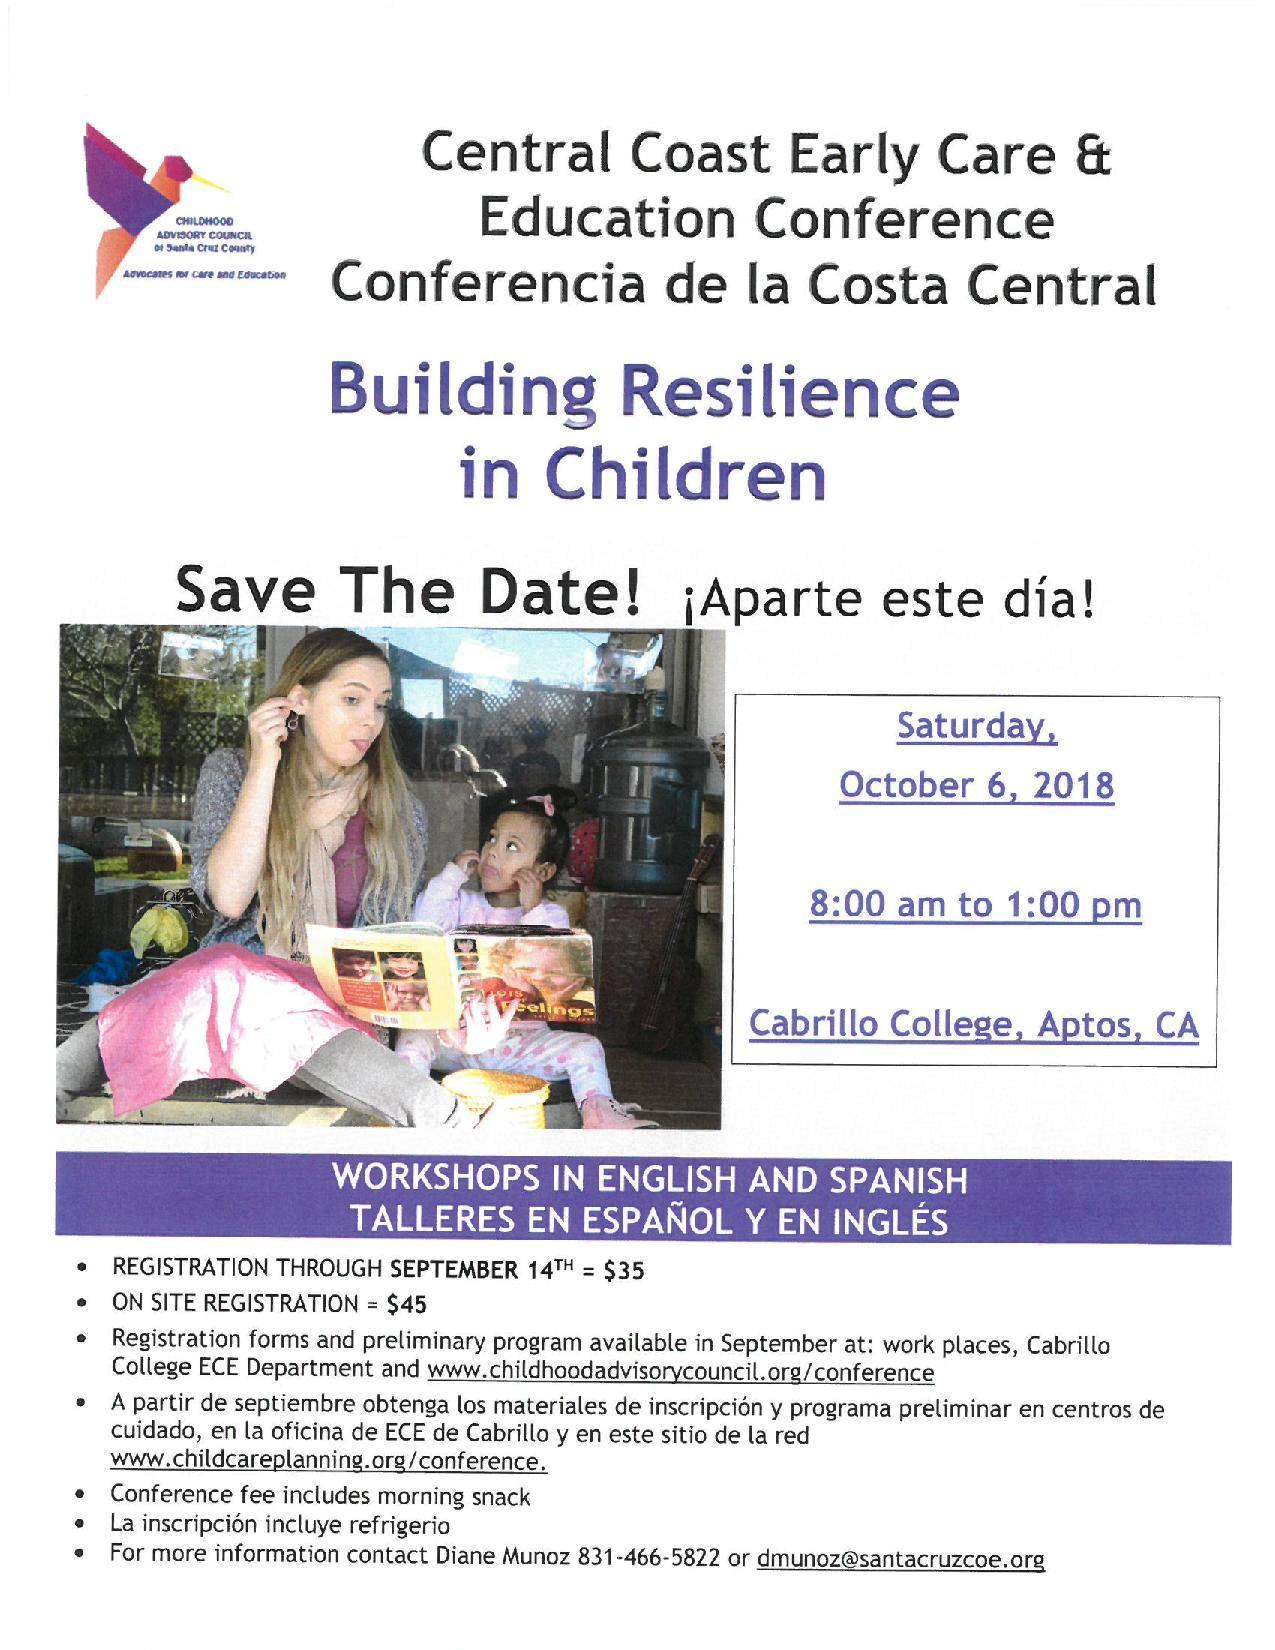 Save the Date! Building Resilience in Children